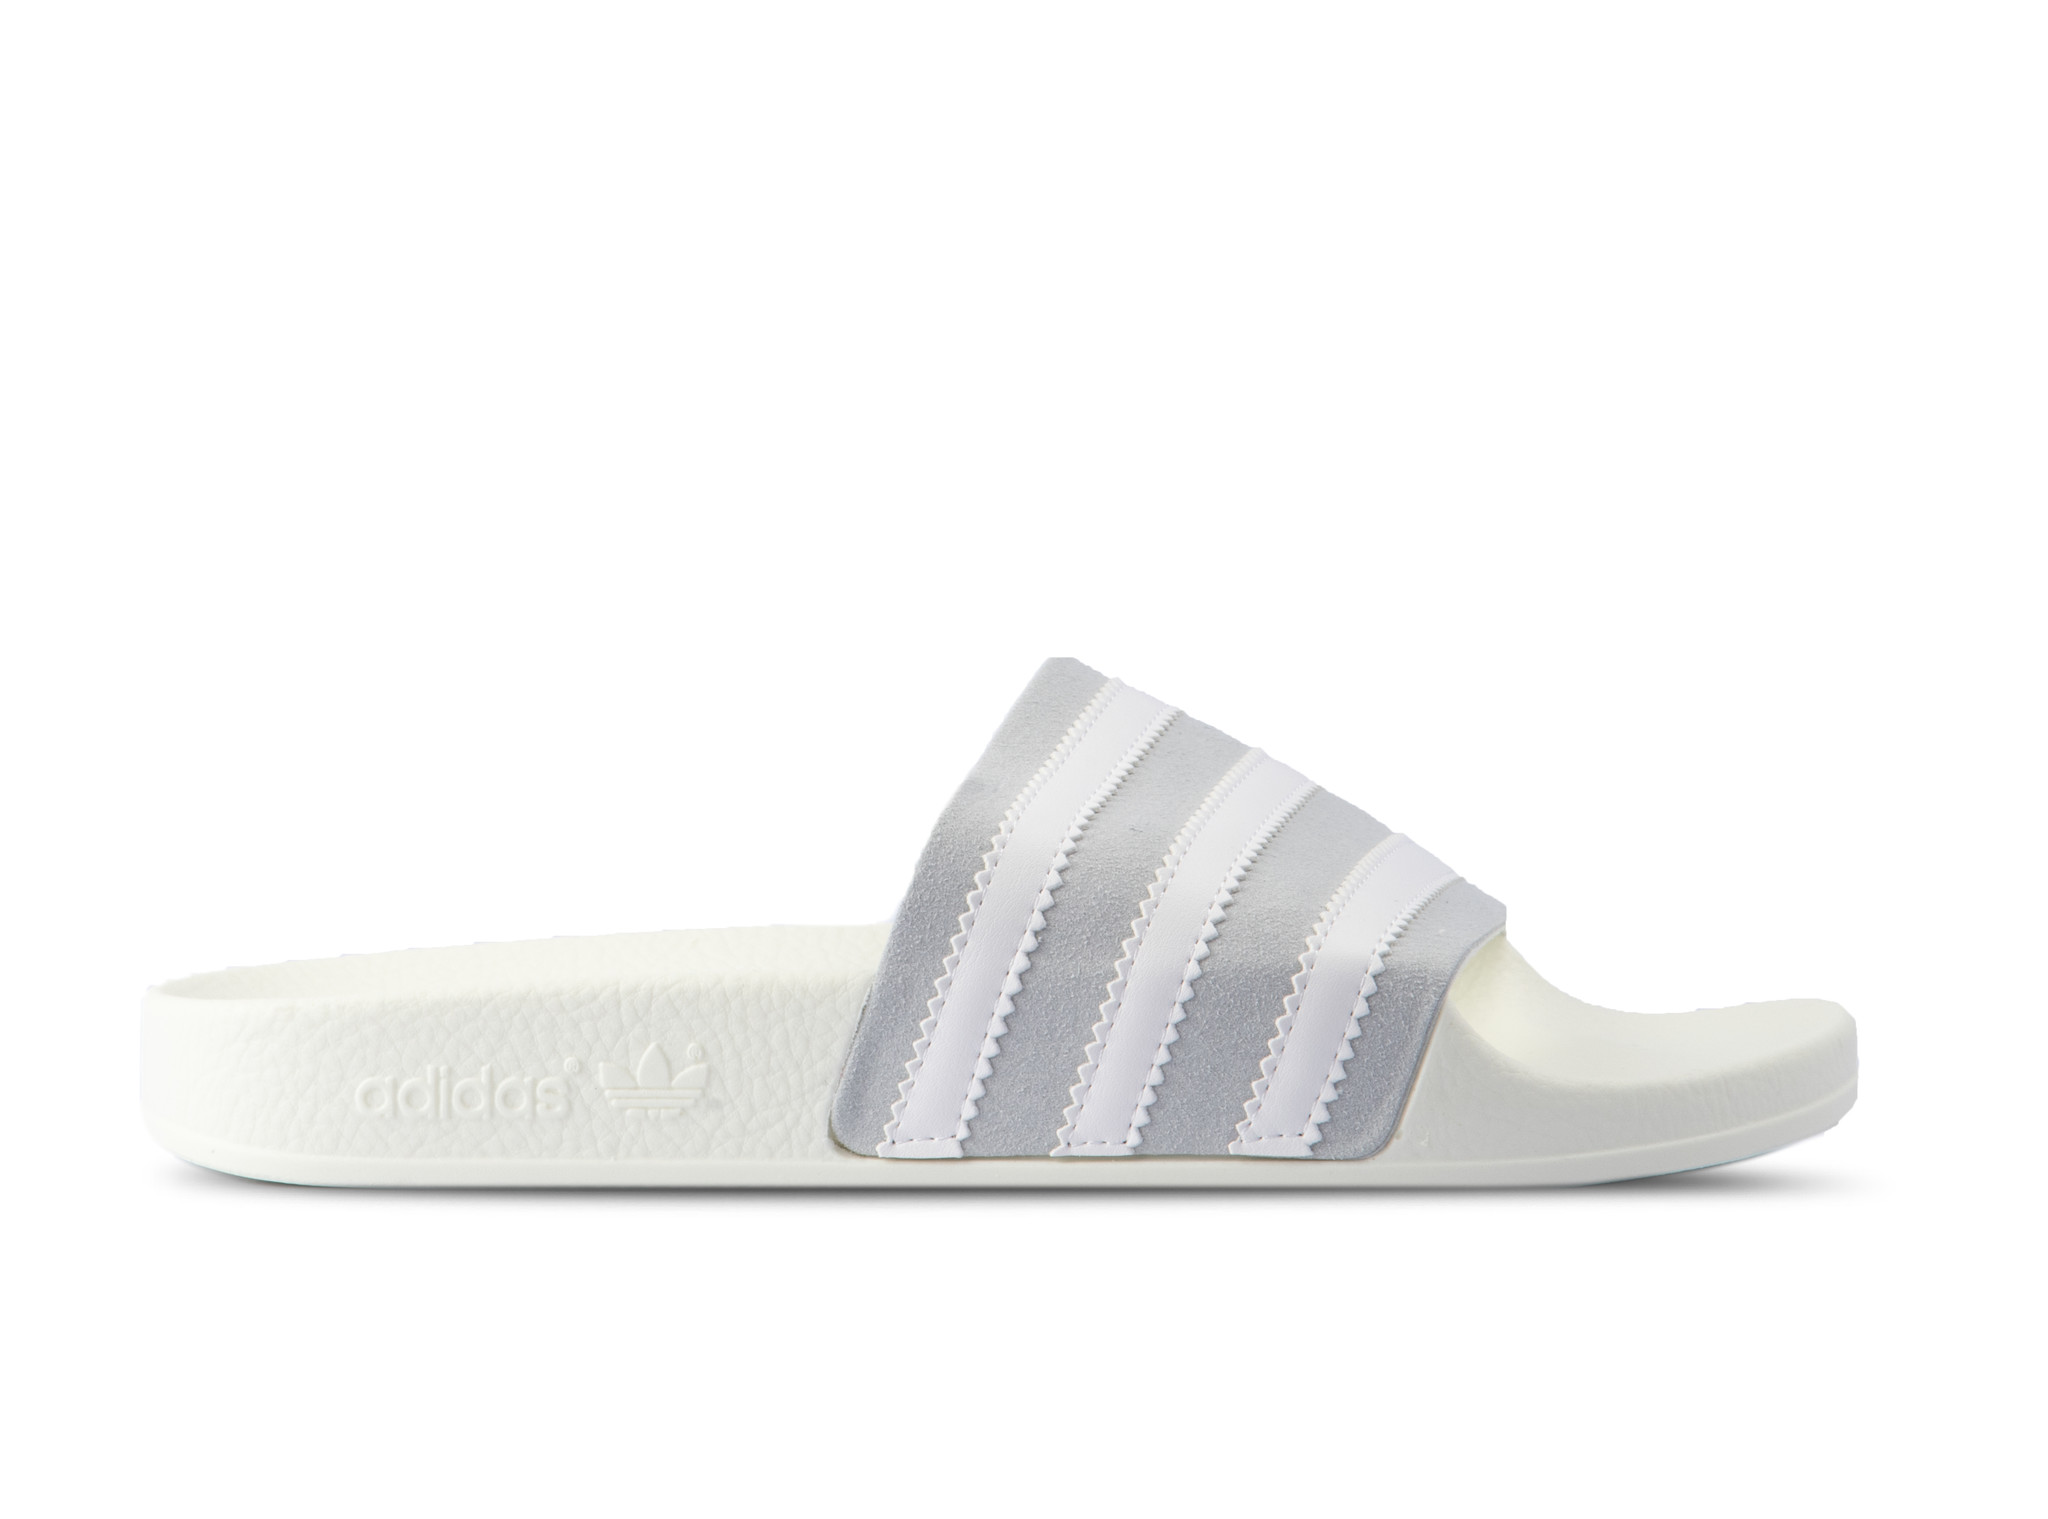 8a7d52411755 Adilette Grey Two Footwear White Off White CG6435 will be added to your  shopping card